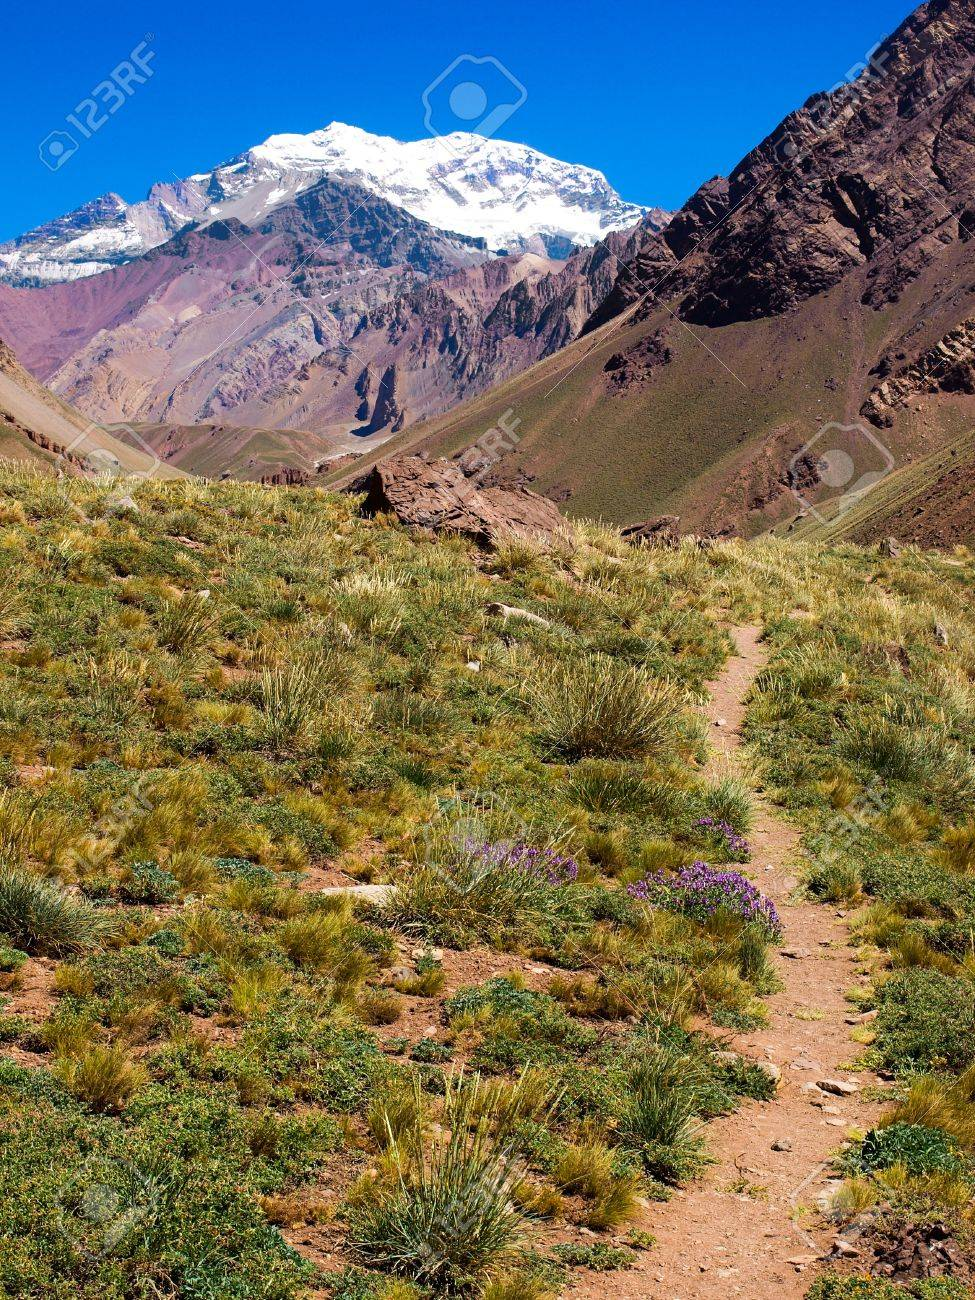 Hiking path with Aconcagua in the background as seen in Aconcagua National Park, Argentina Stock Photo - 11644978